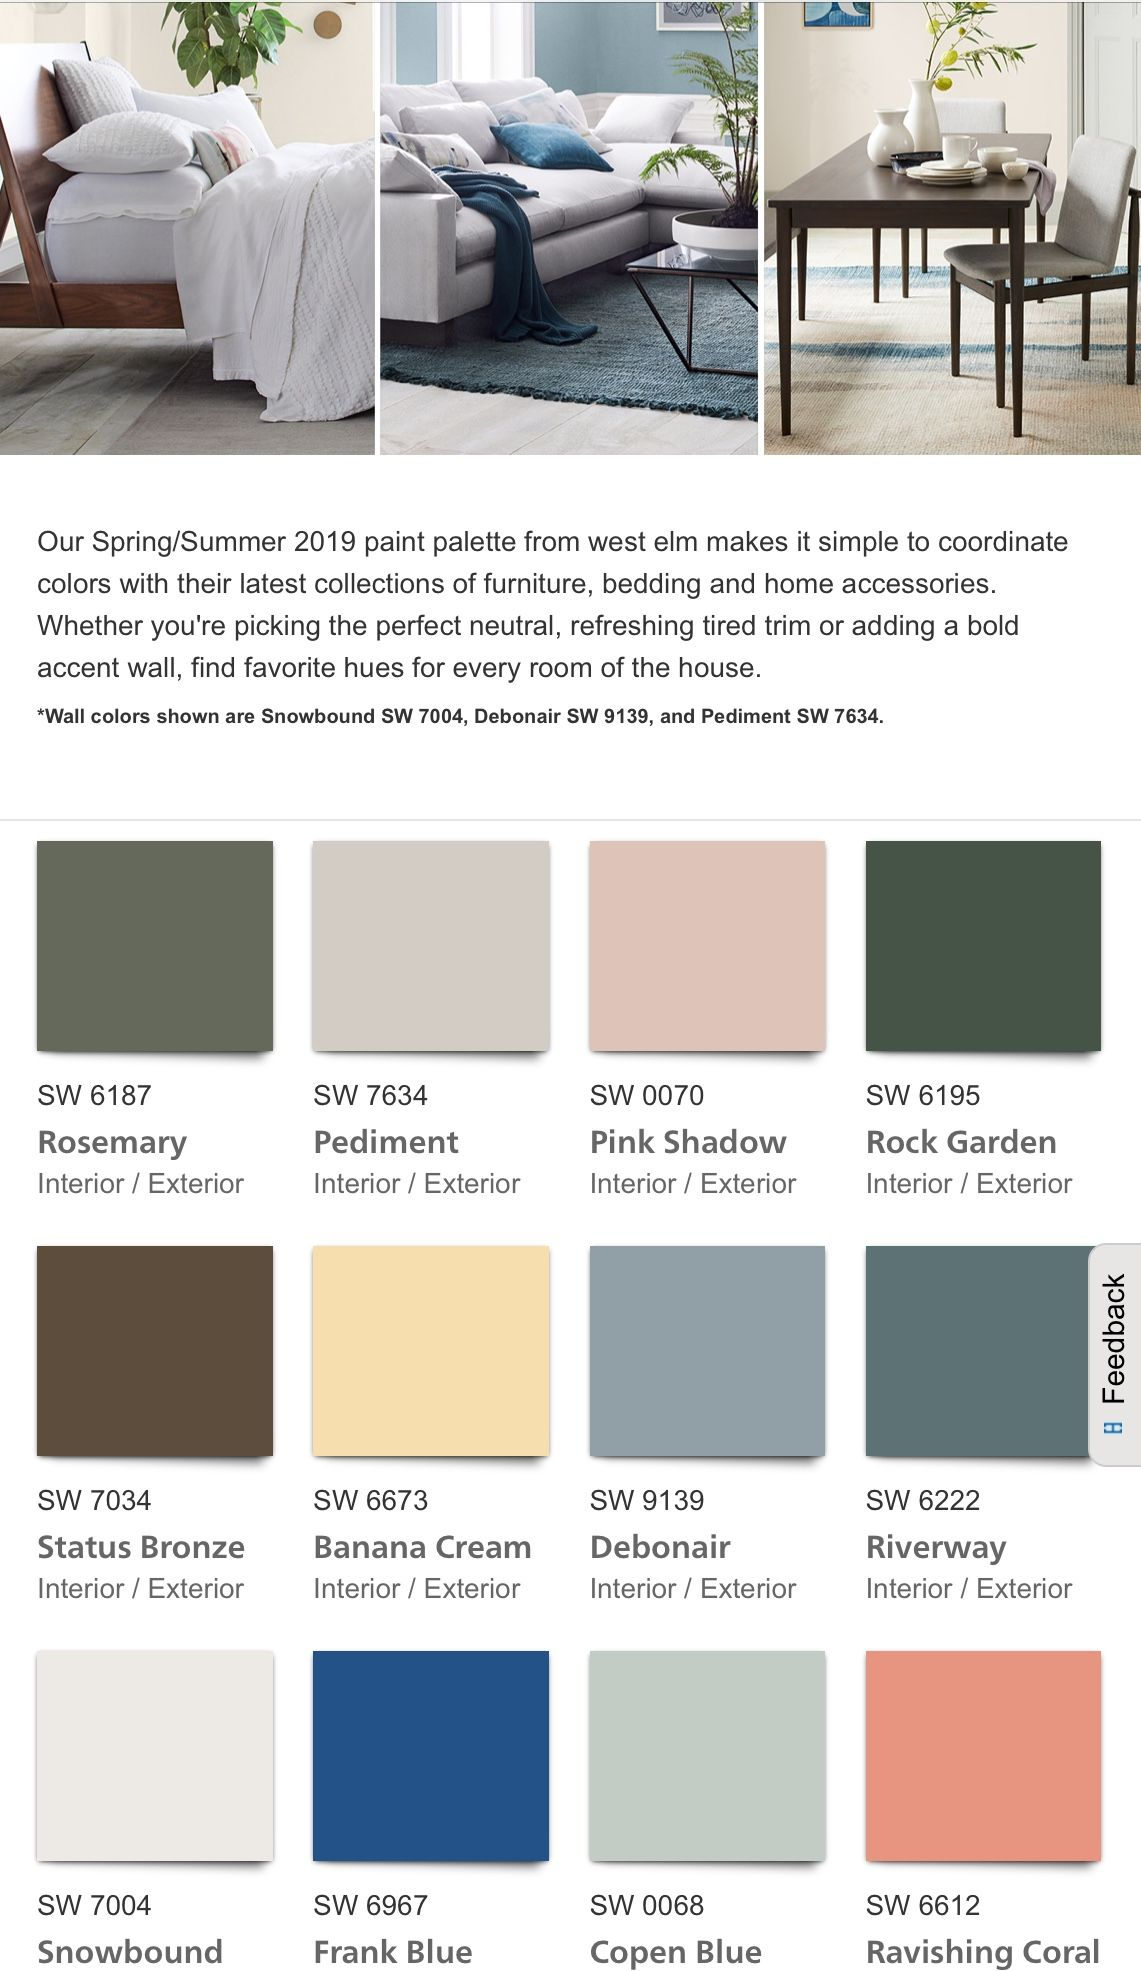 Sherwin Williams West Elm Collection 2019 Wall Colors Home House